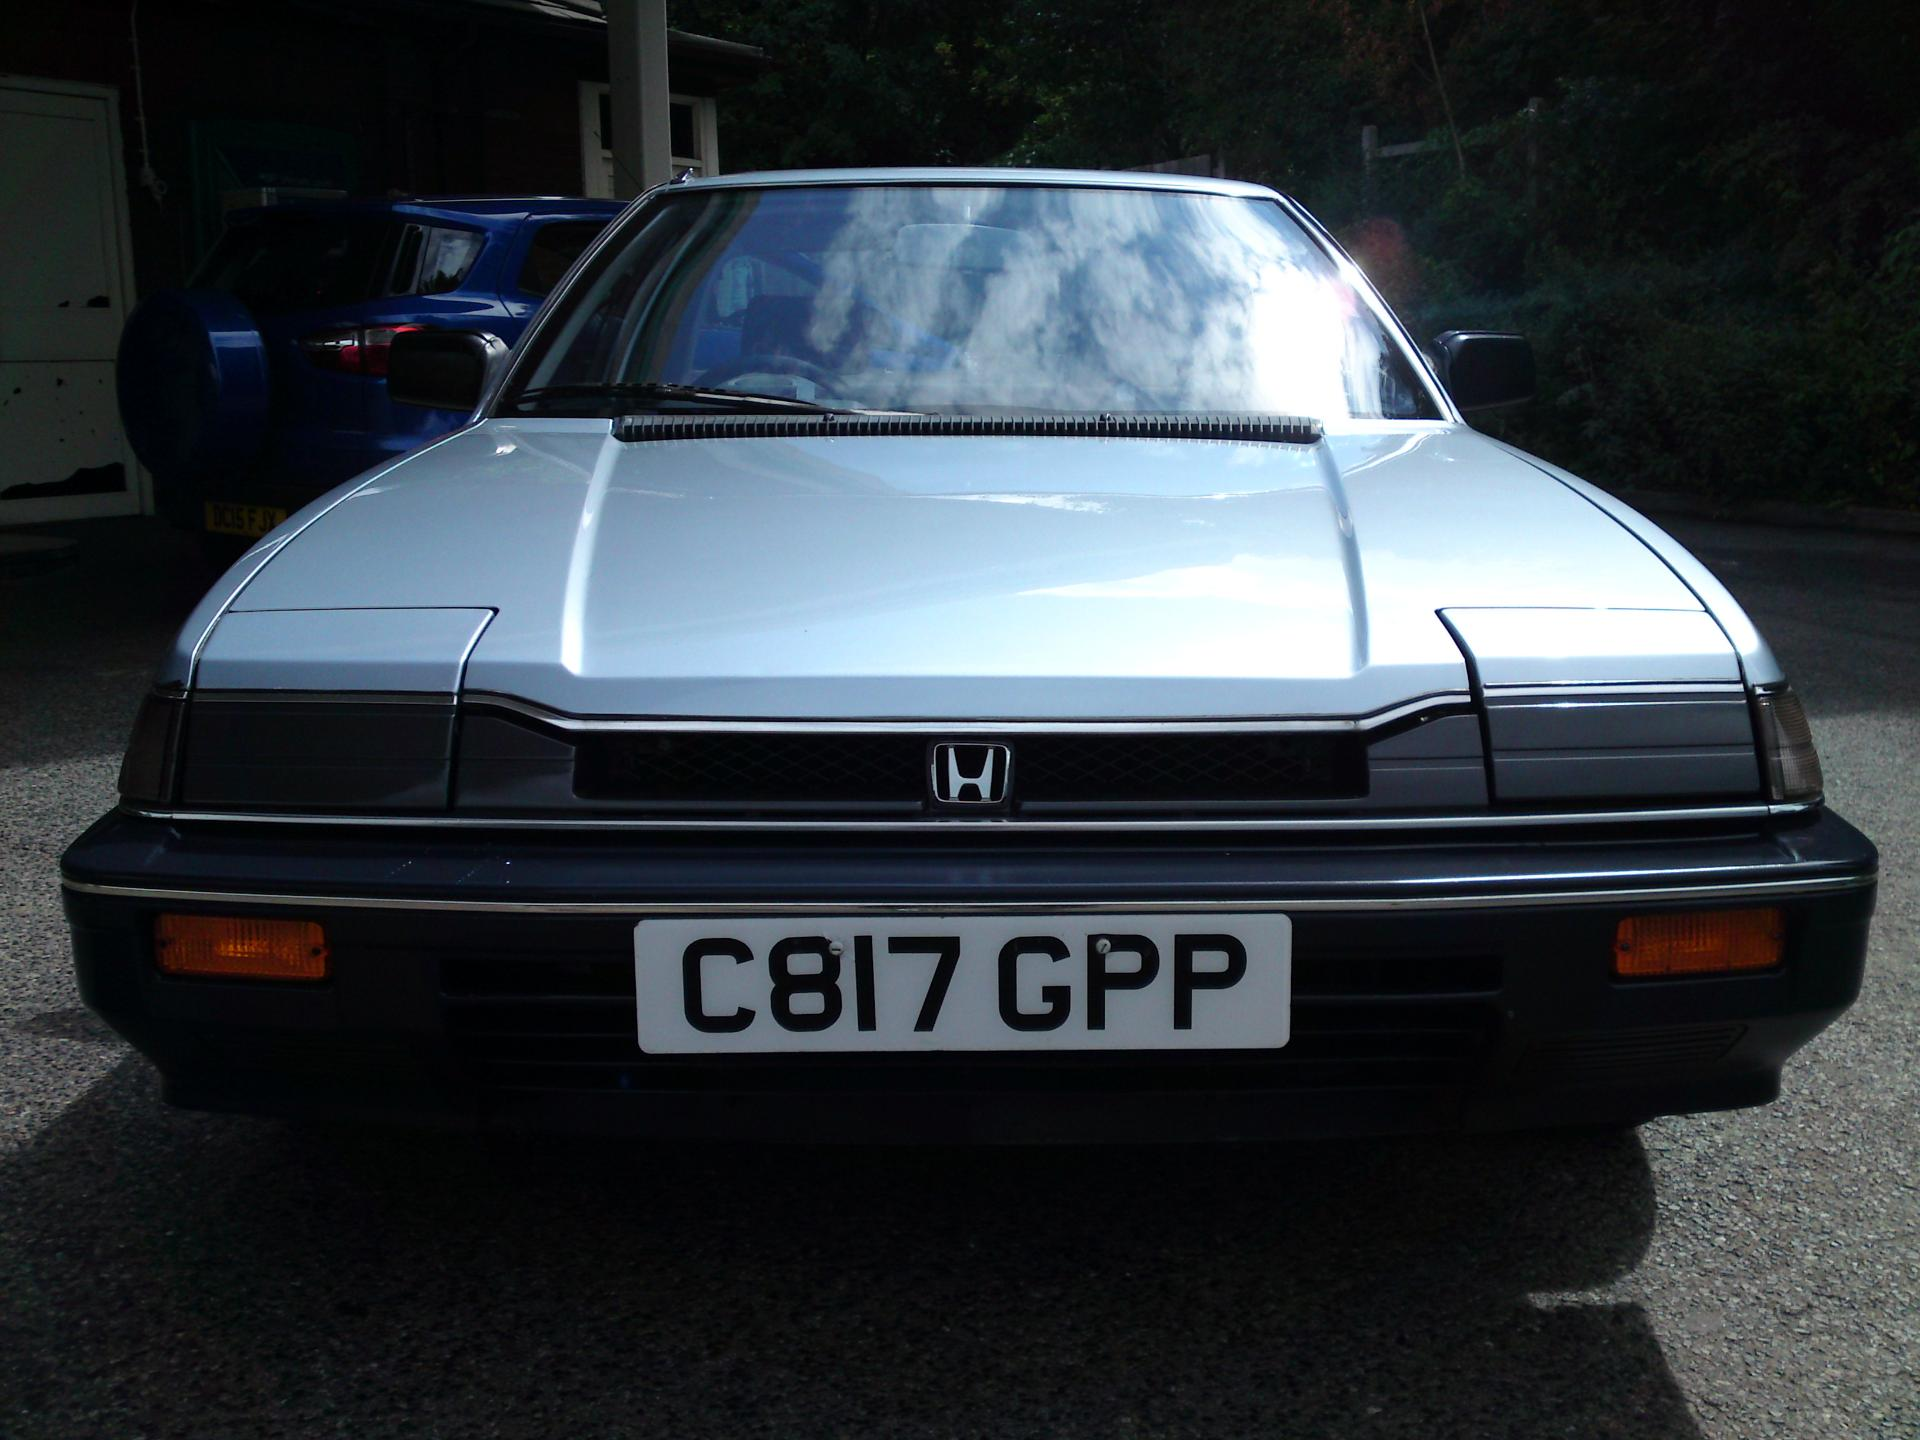 1986 (C) Honda AX PRELUDE AUTO 1.8 AUTOMATIC 2DR / LAST OWNER FOR 31 YEARS / DRY STORED / STUNNING / For Sale In Watford, Hertfordshire